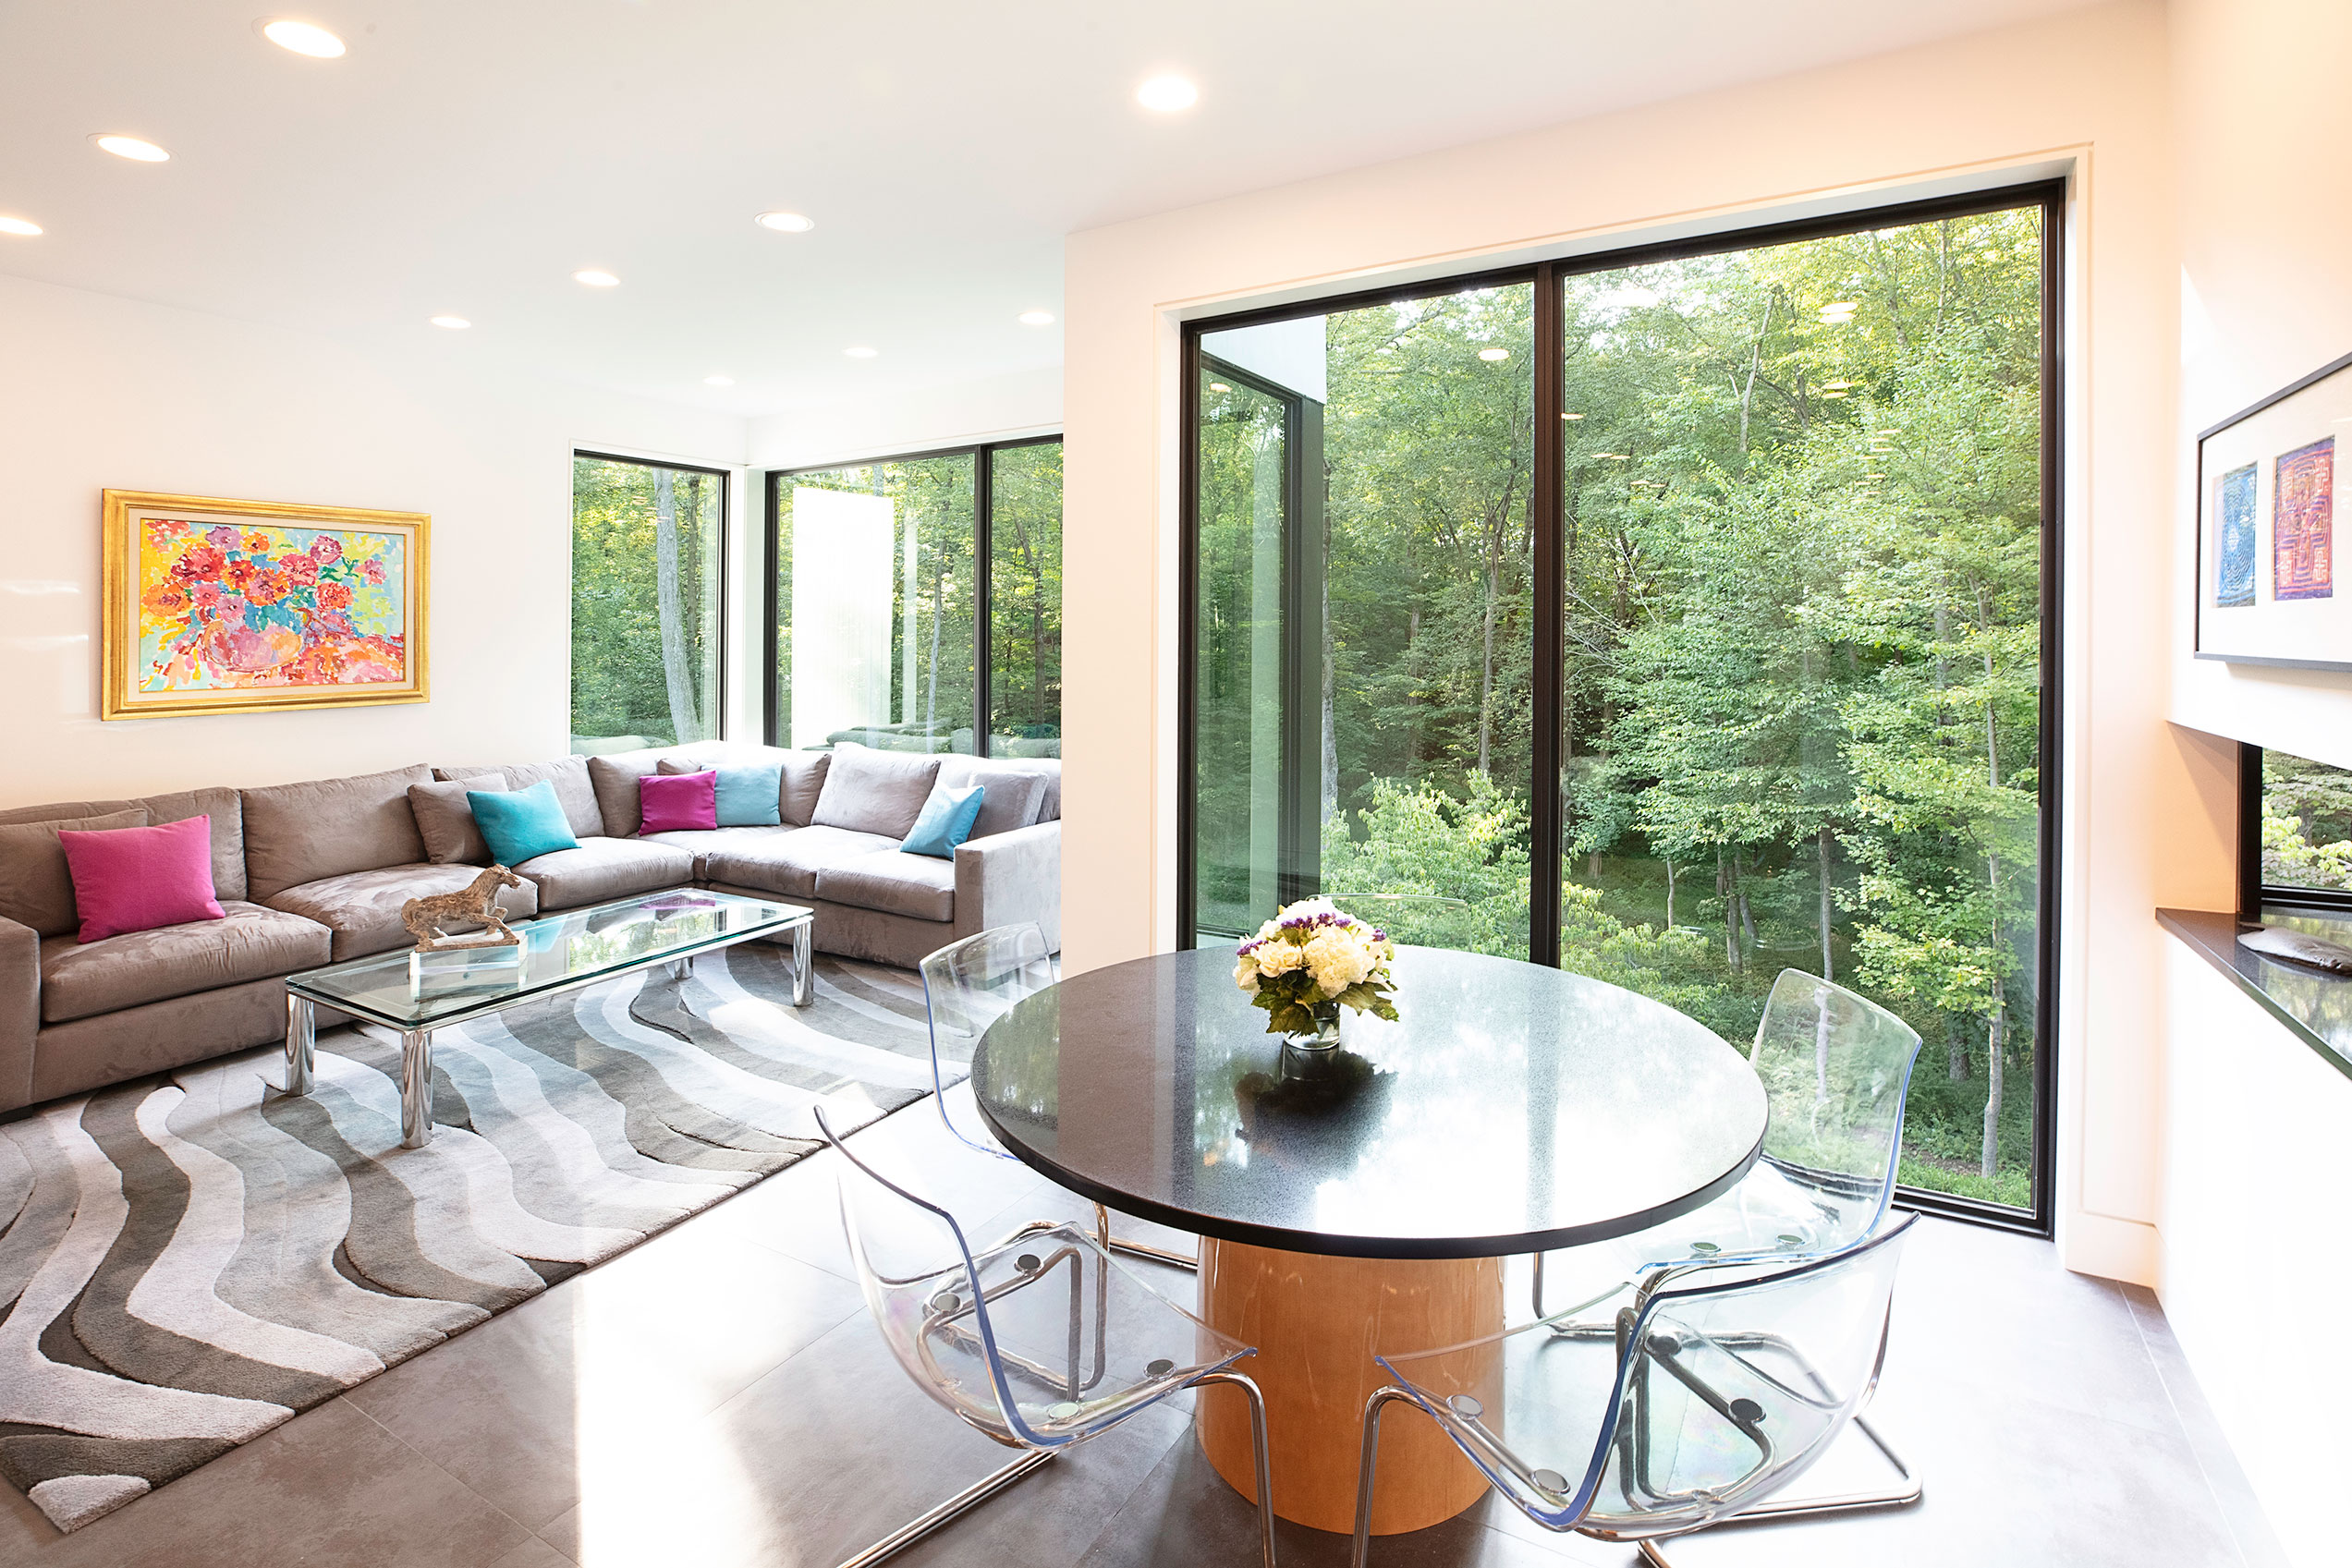 Glass frames the lush green landscape surrounding the Westchester County, New York home.